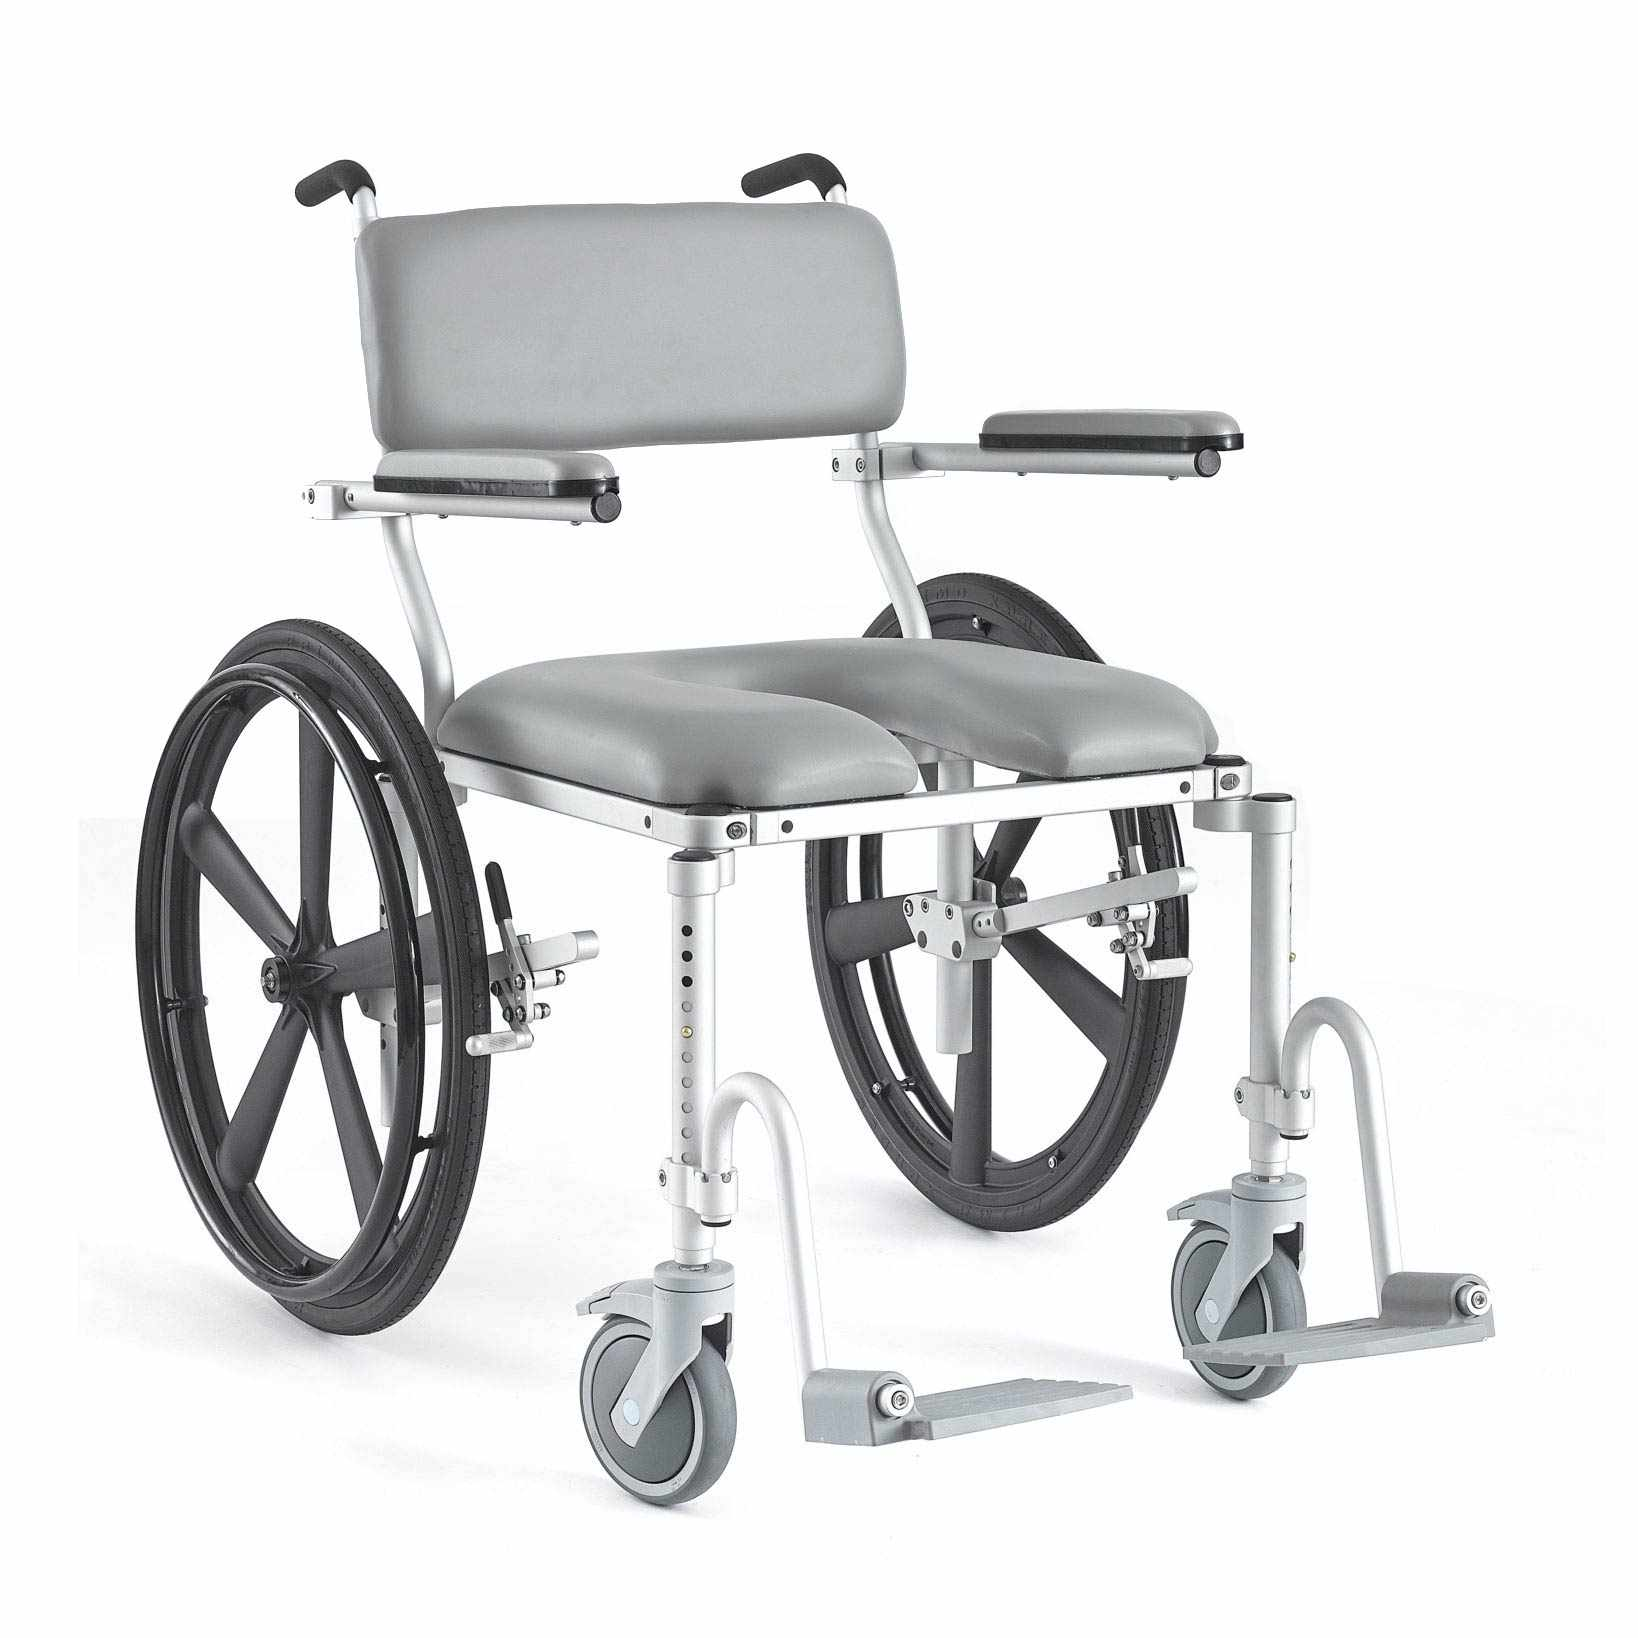 Nuprodx 4224 Roll-In Shower Commode Chair   Medicaleshop